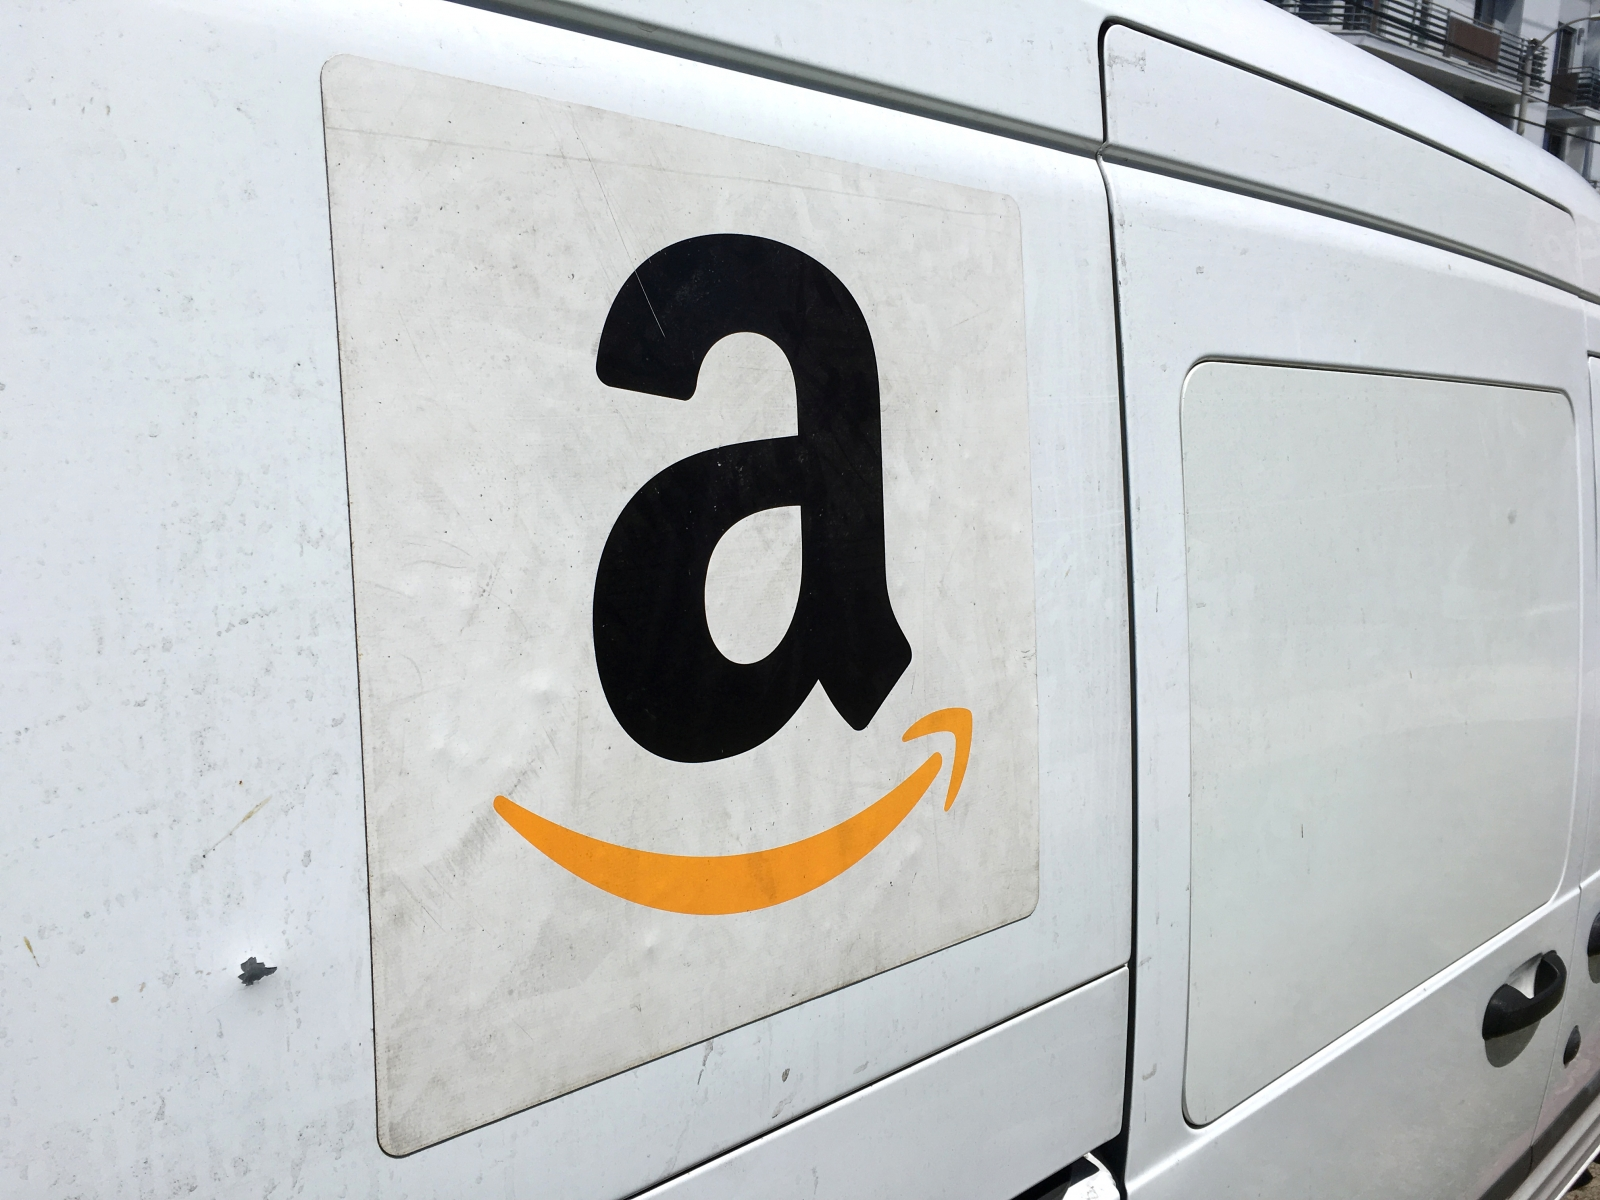 Amazon working on driverless vehicles